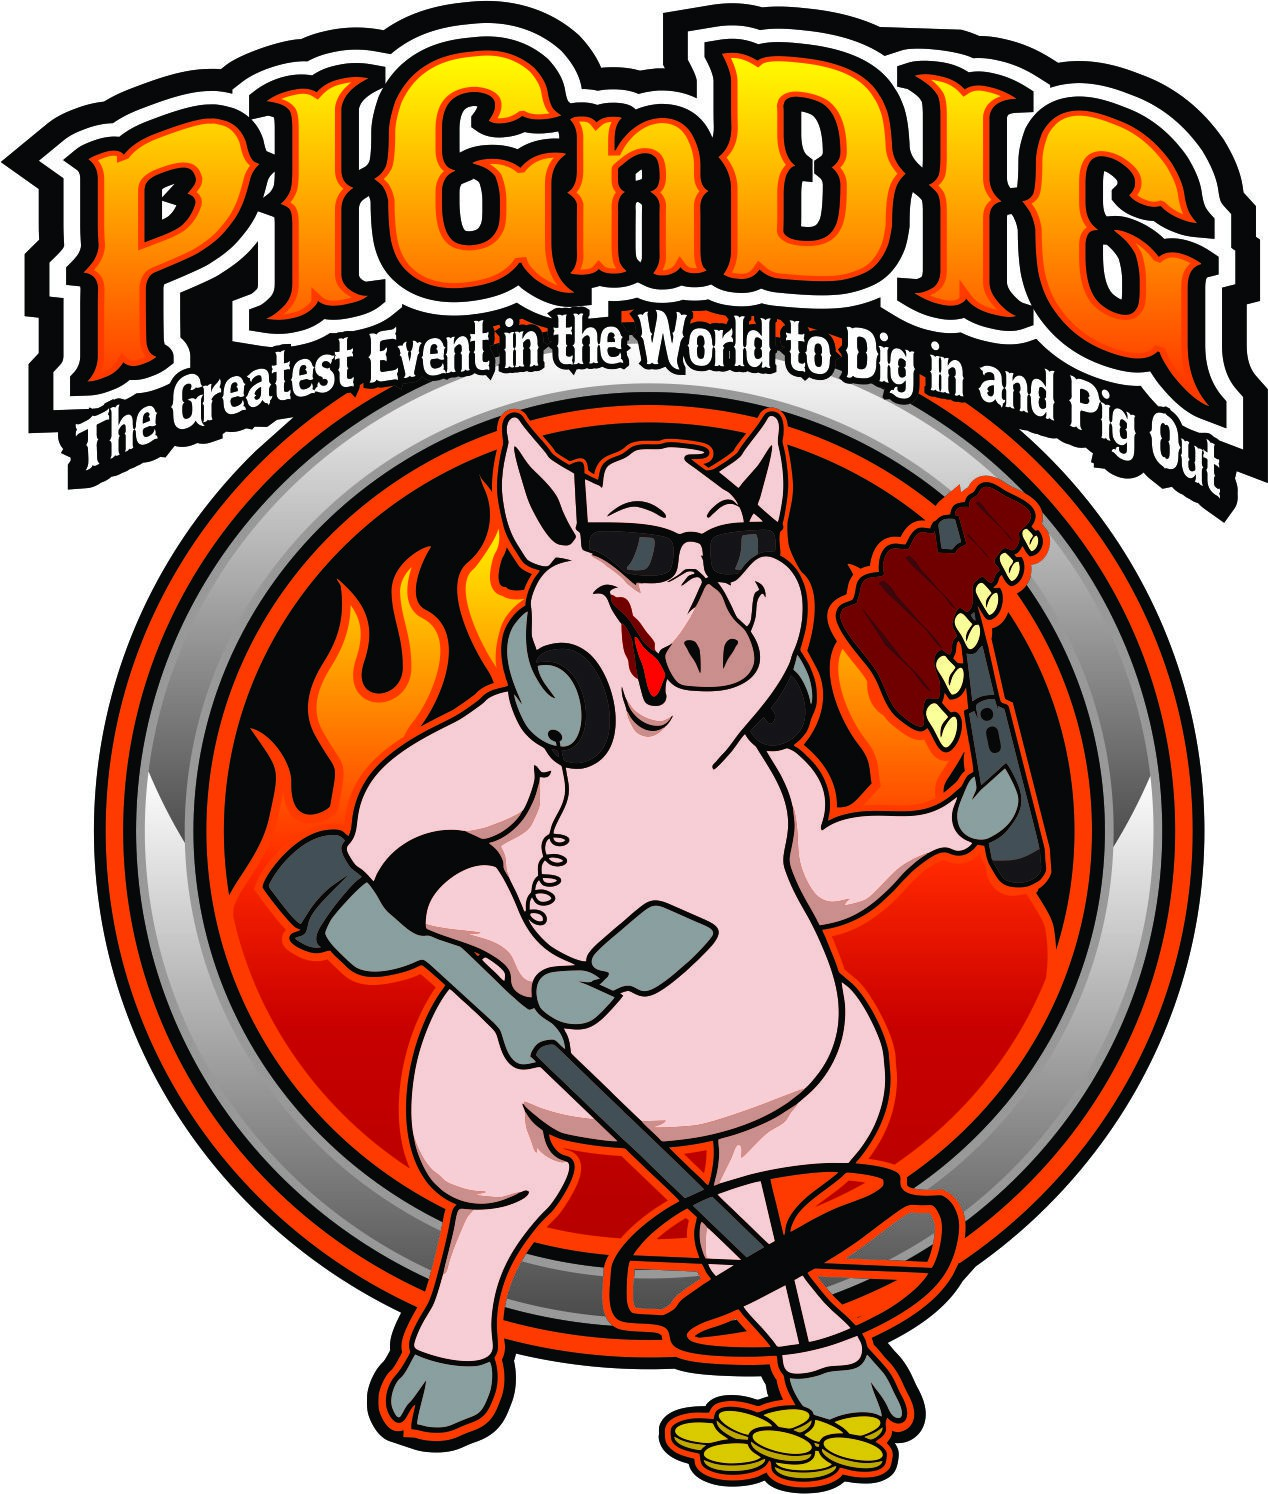 Help PIGnDIG with a new logo